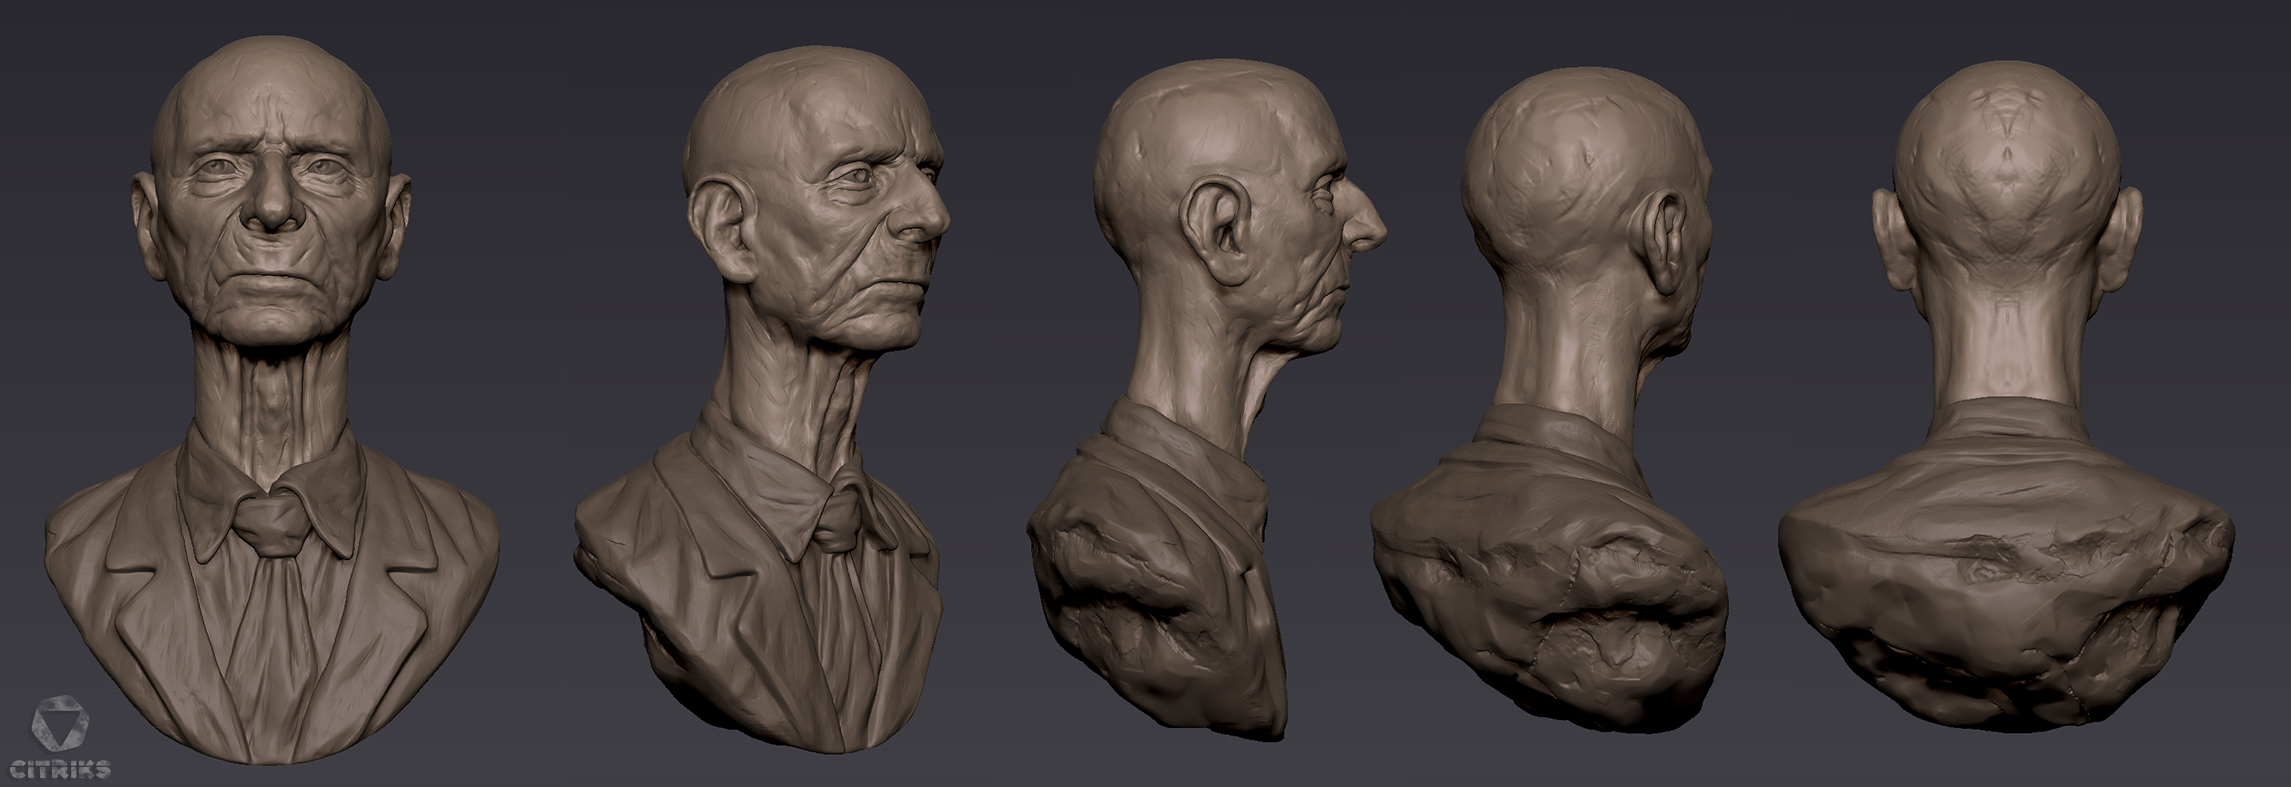 russel_turn_zbrush_a[1].jpg